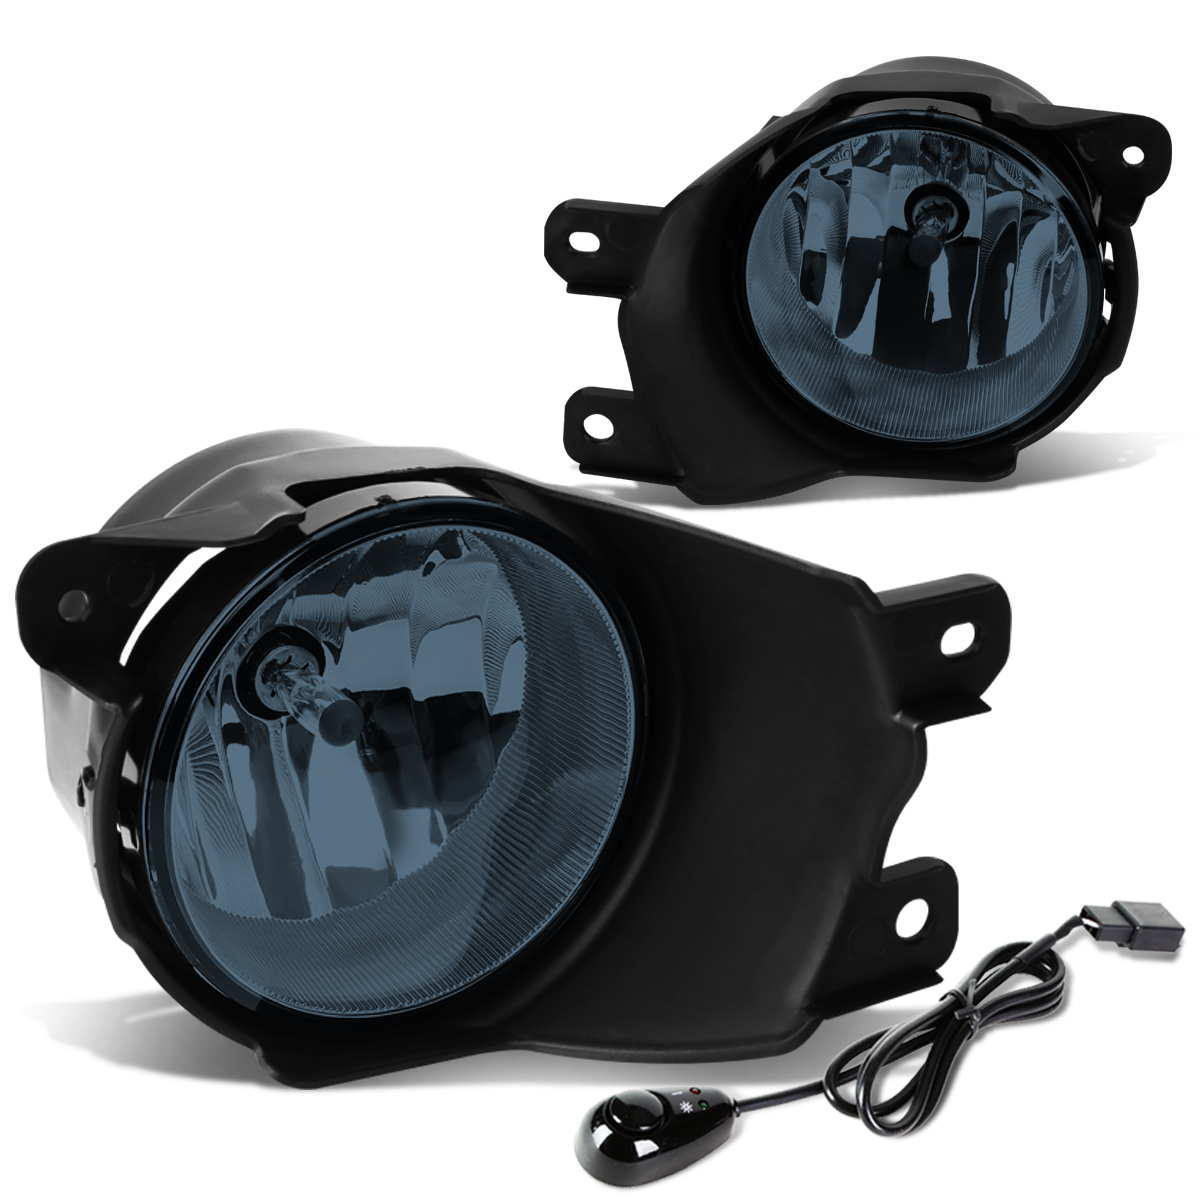 For 08-16 Toyota Sequoia Pair Bumper Driving Fog Light/Lamp+Switch Smoked Lens 09 10 11 12 13 14 15